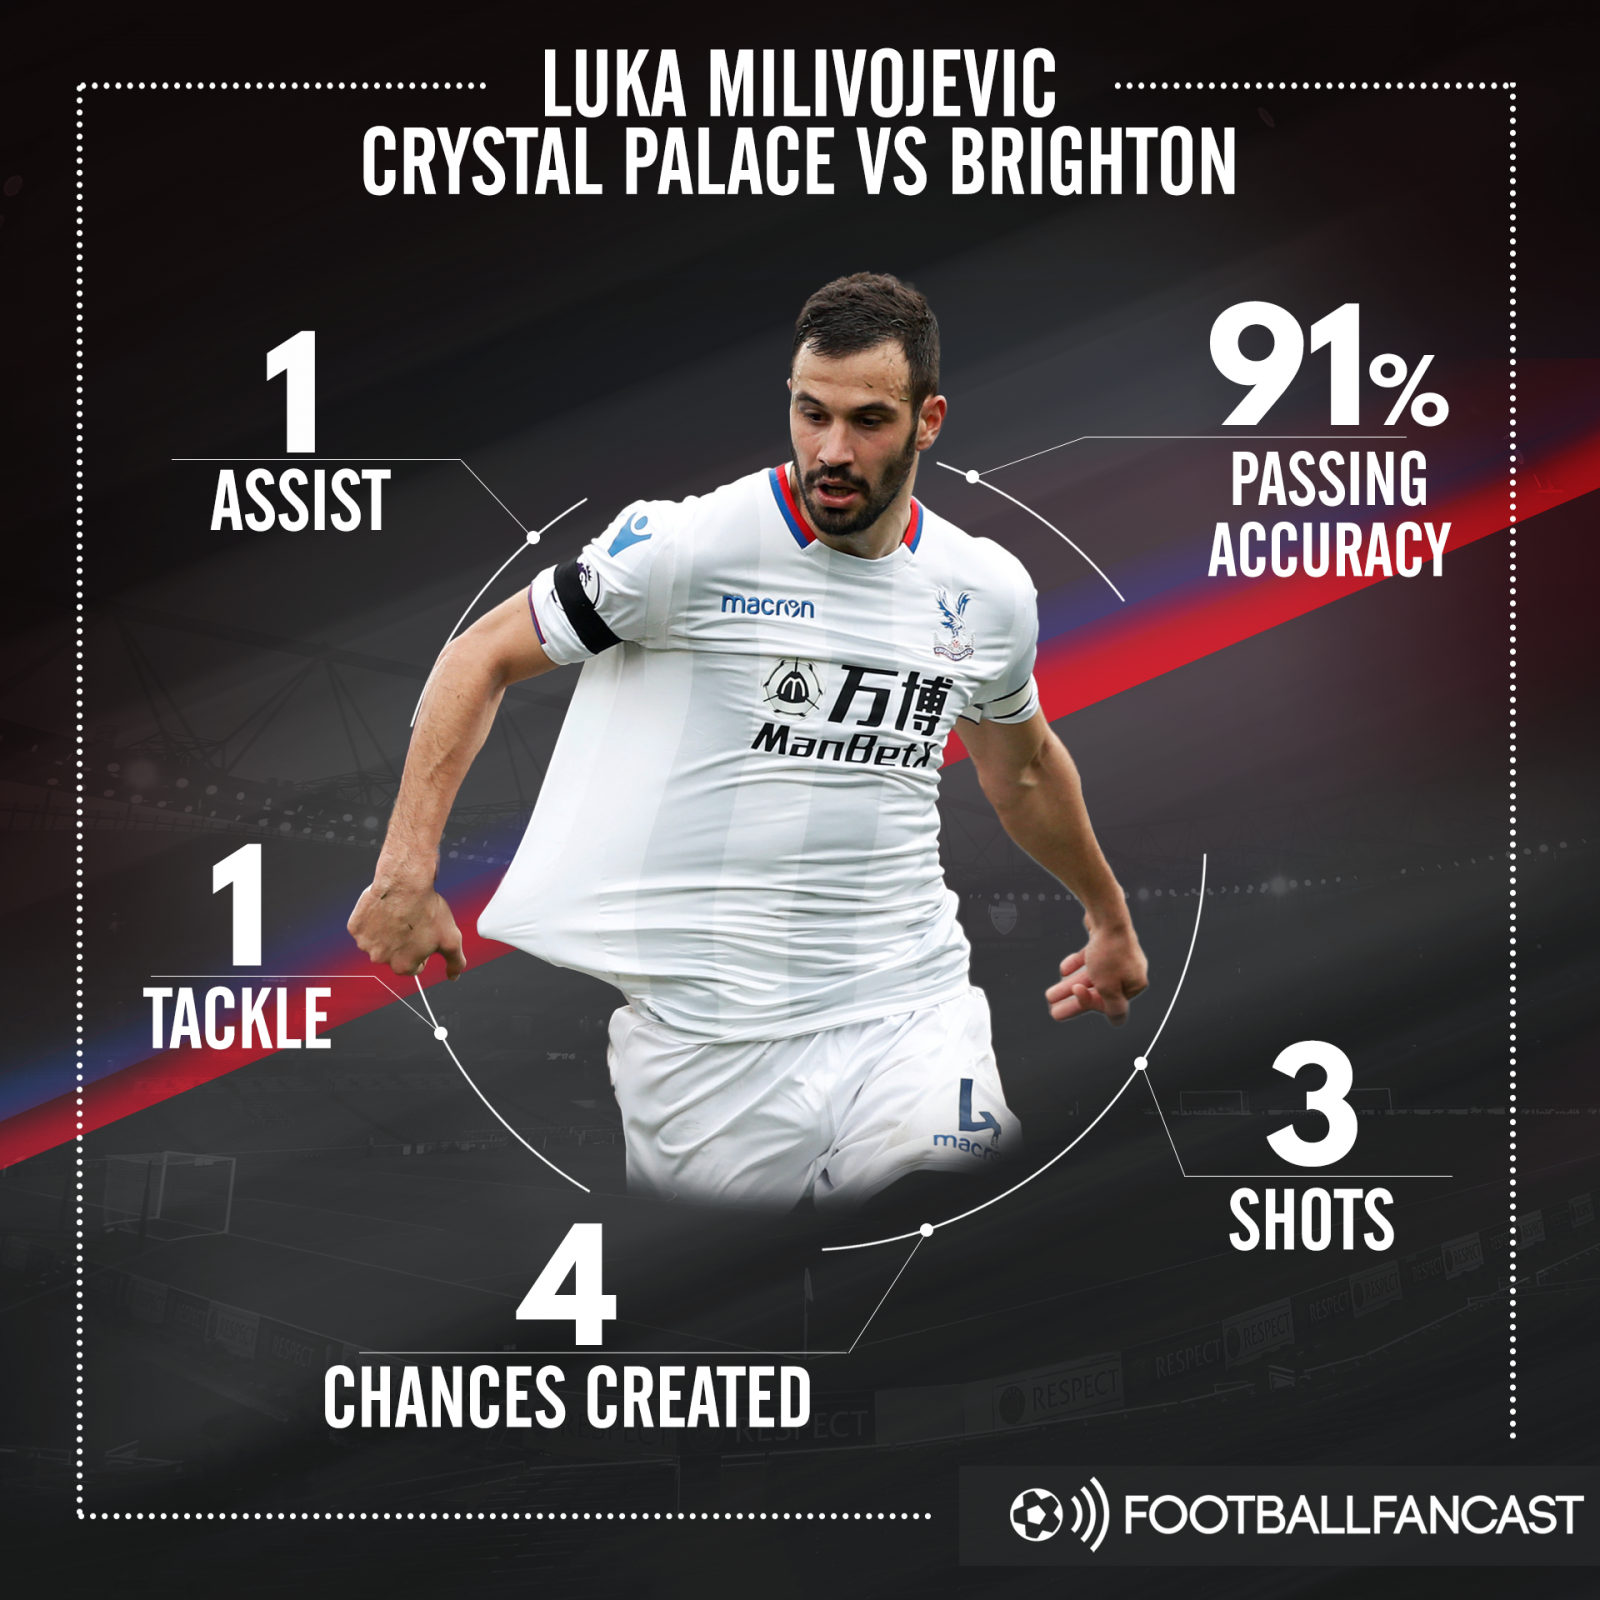 Luka Milijovevic's stats from Crystal Palace's 3-2 win over Brighton